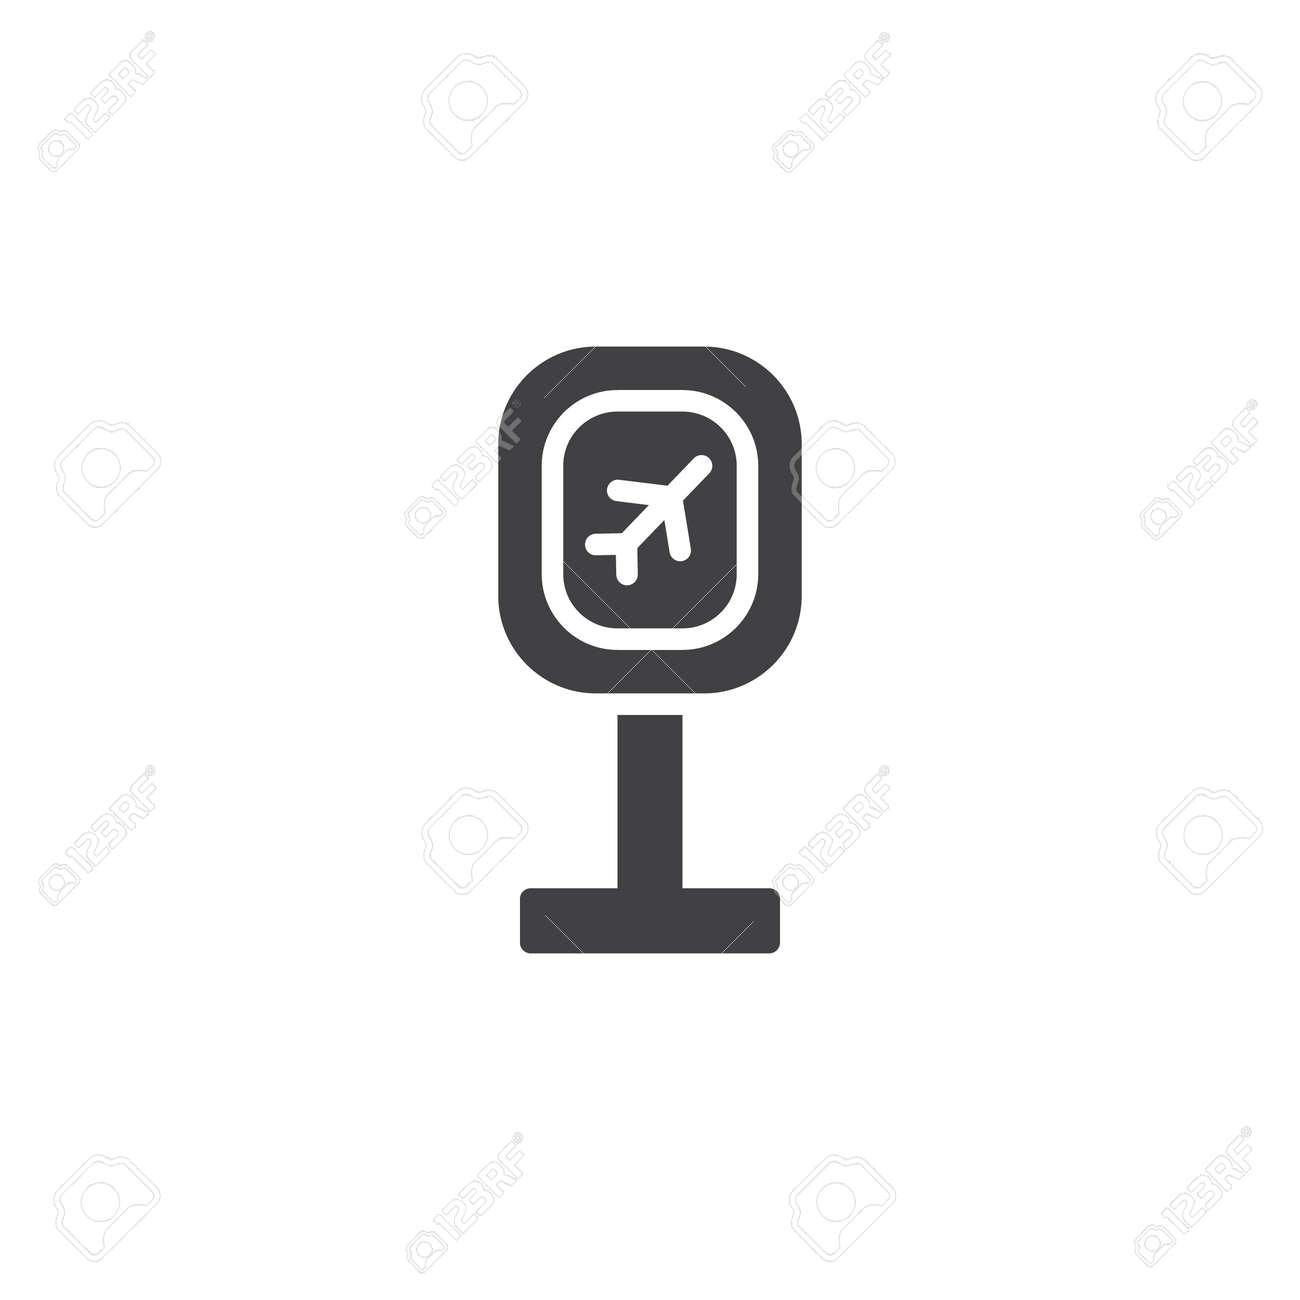 Airport Departure Zone Sign Vector Icon Filled Flat Sign For Royalty Free Cliparts Vectors And Stock Illustration Image 103759805